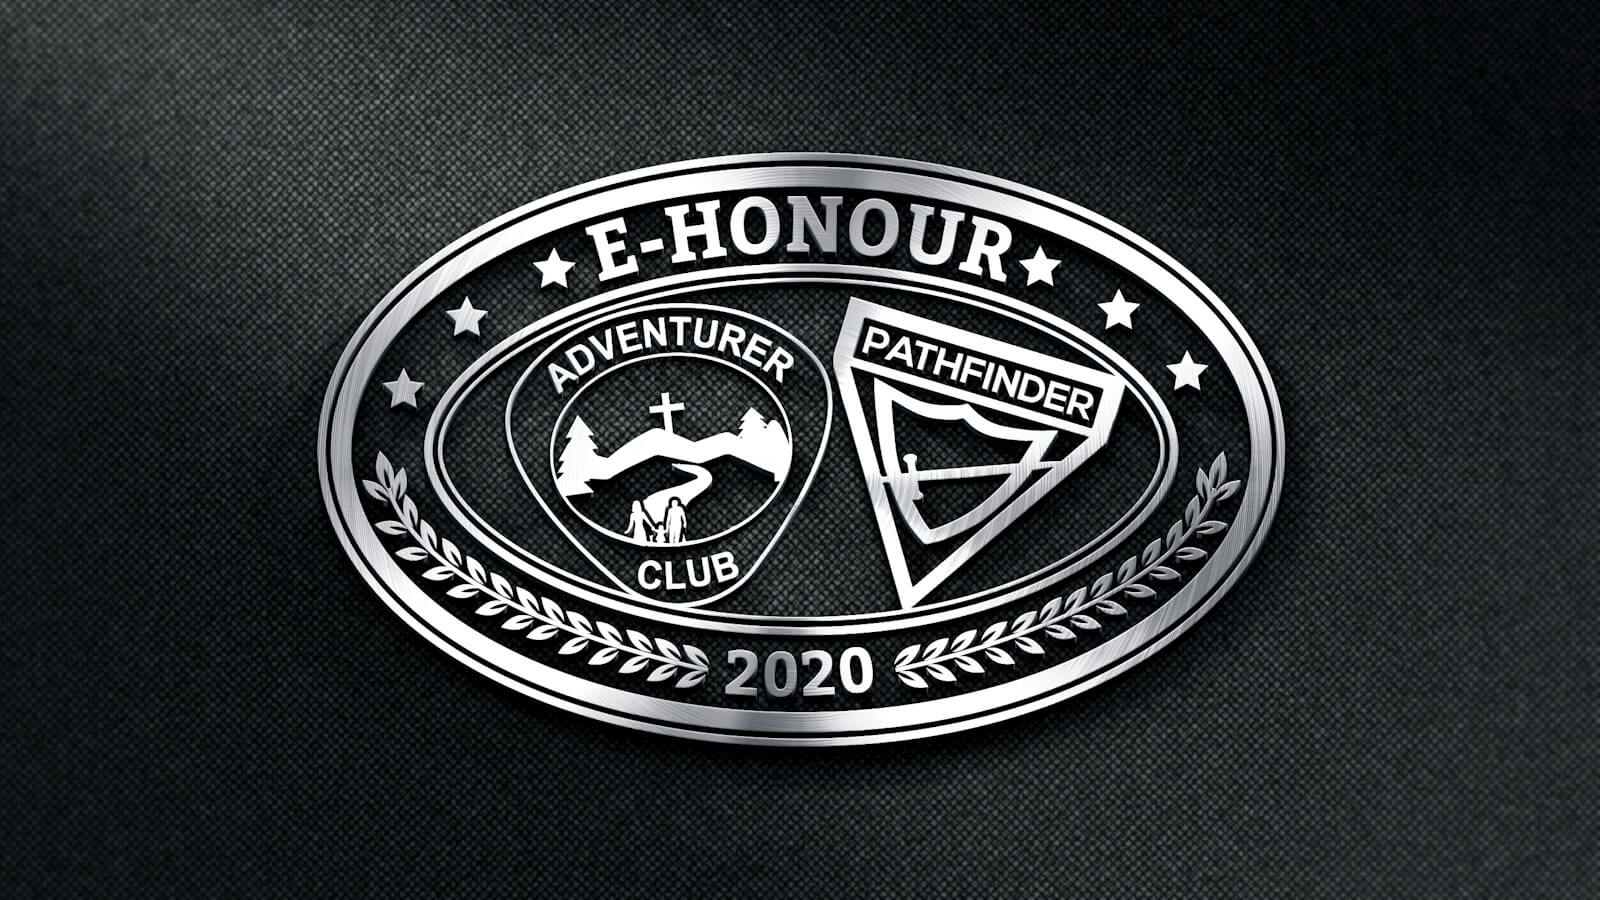 Adventurer and Pathfinder e-honour